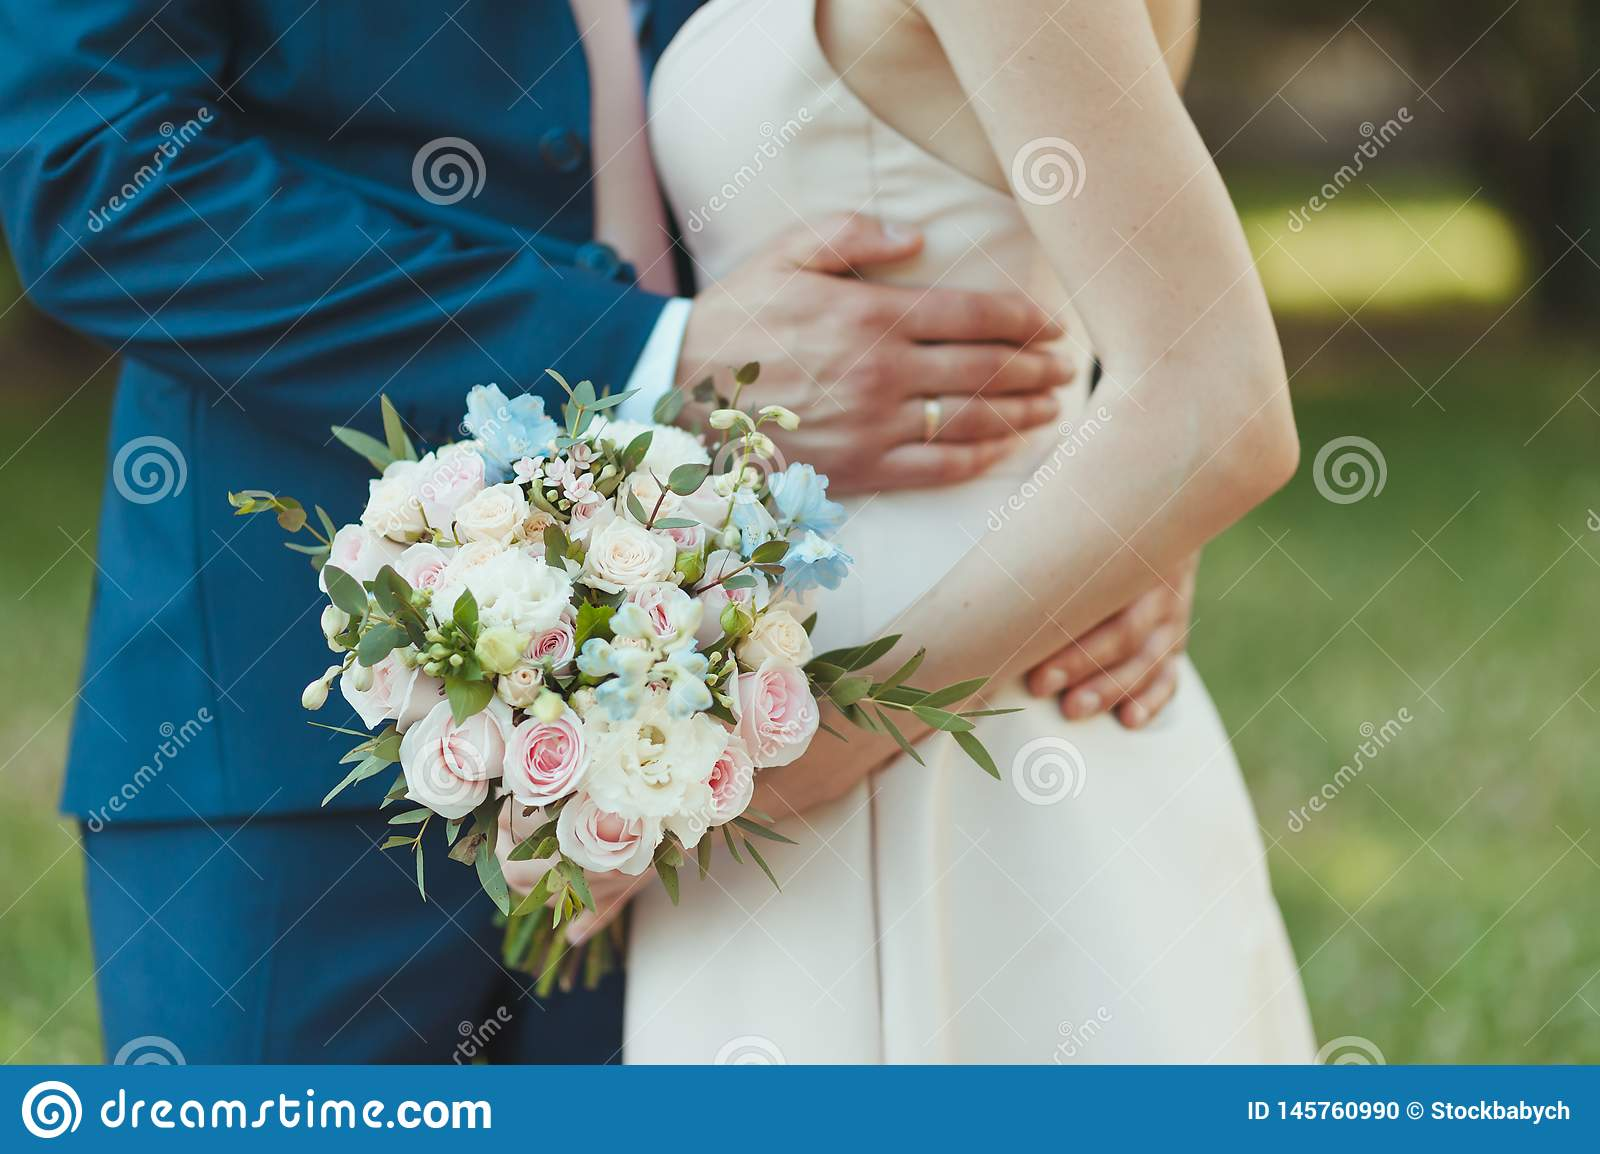 Closeup With Bride And Groom Hands And Bouquet. Bride, Holding A ...